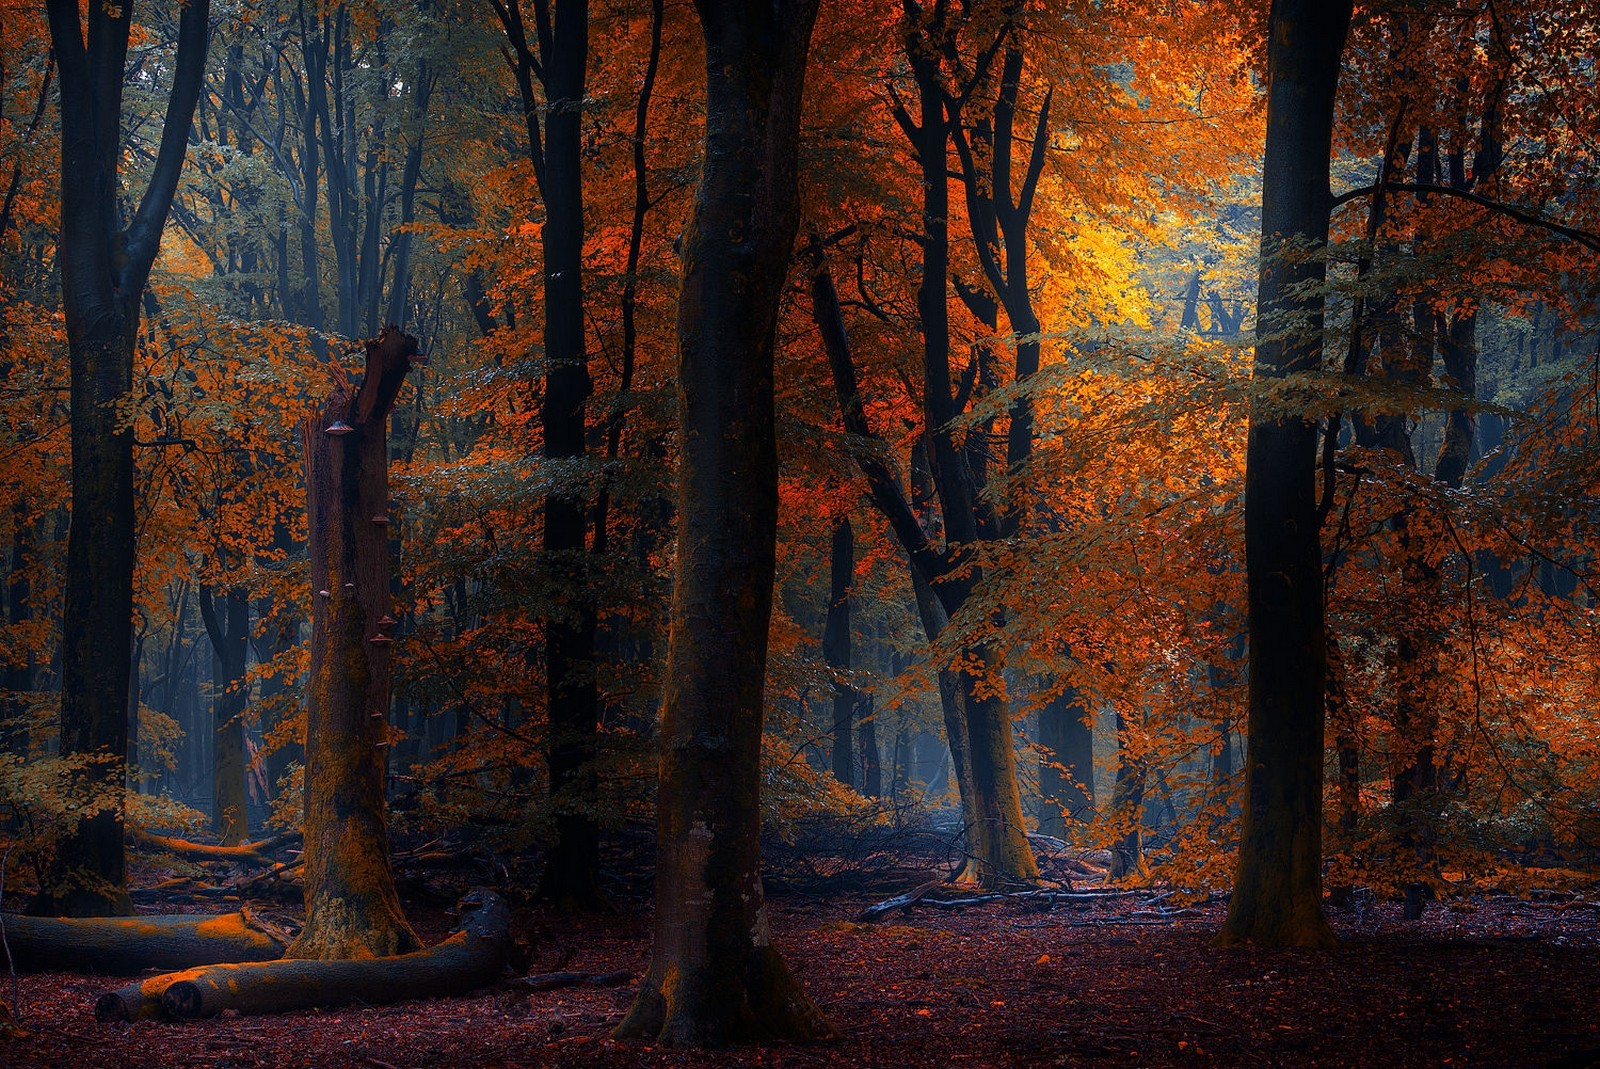 Under the forest in autumn